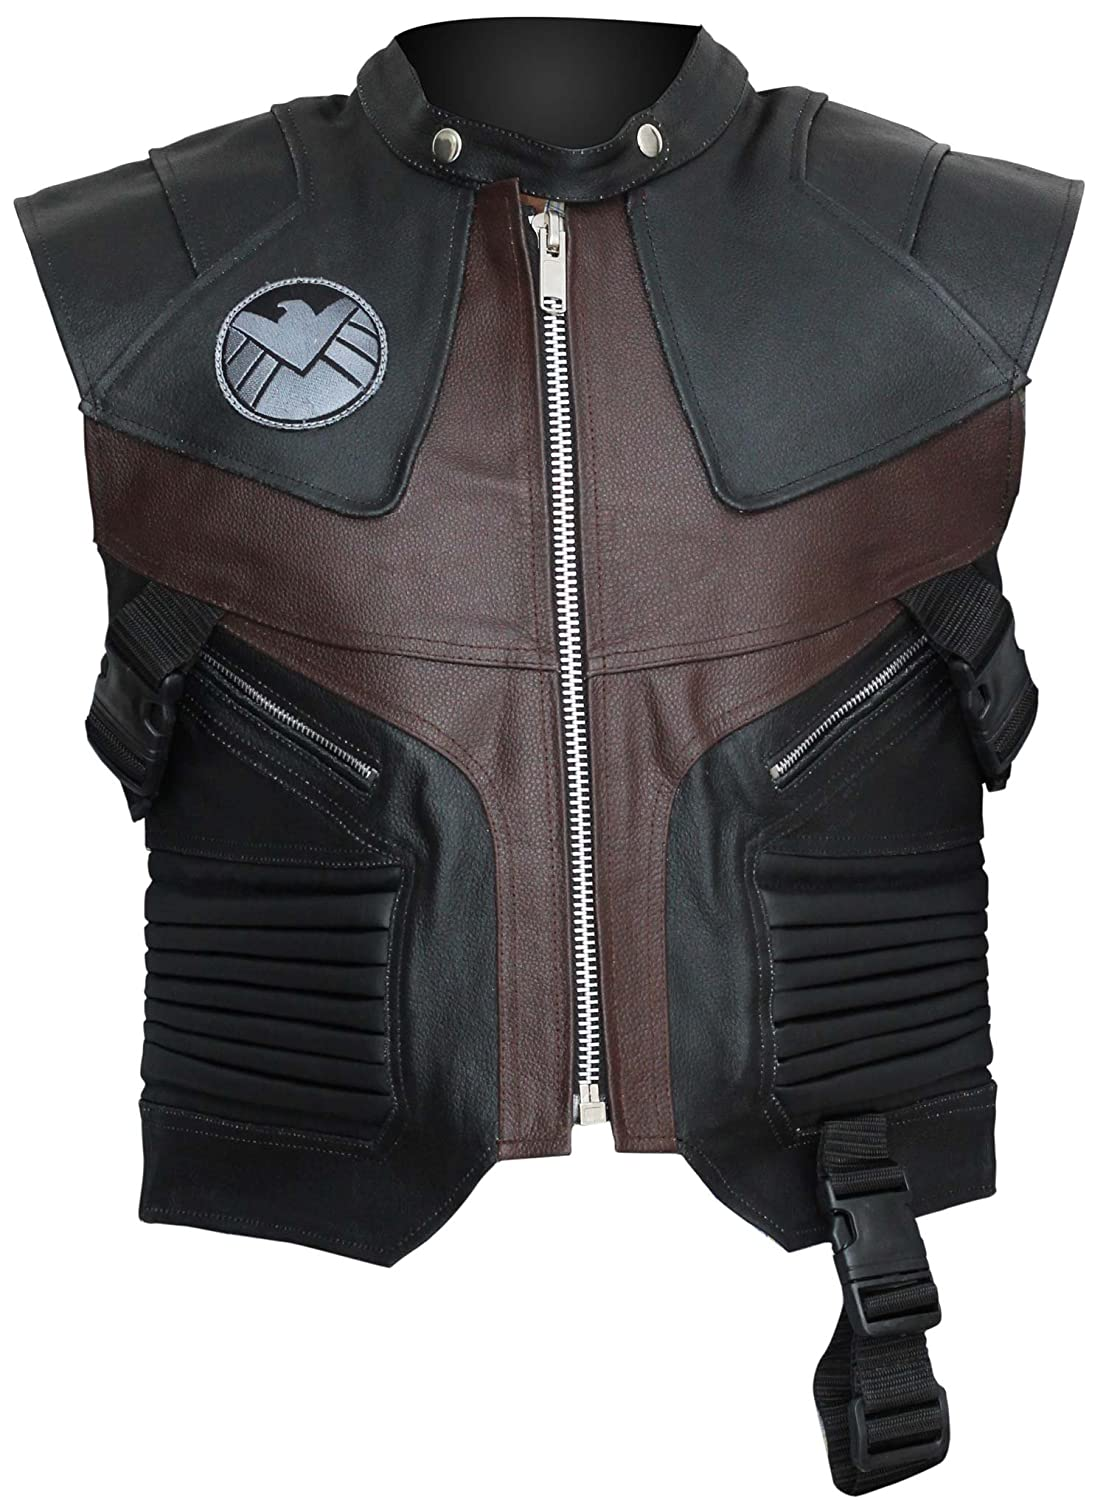 The Avengers: Age of Ultron Hawkeye Real Leather Costume Vest - DeluxeAdultCostumes.com